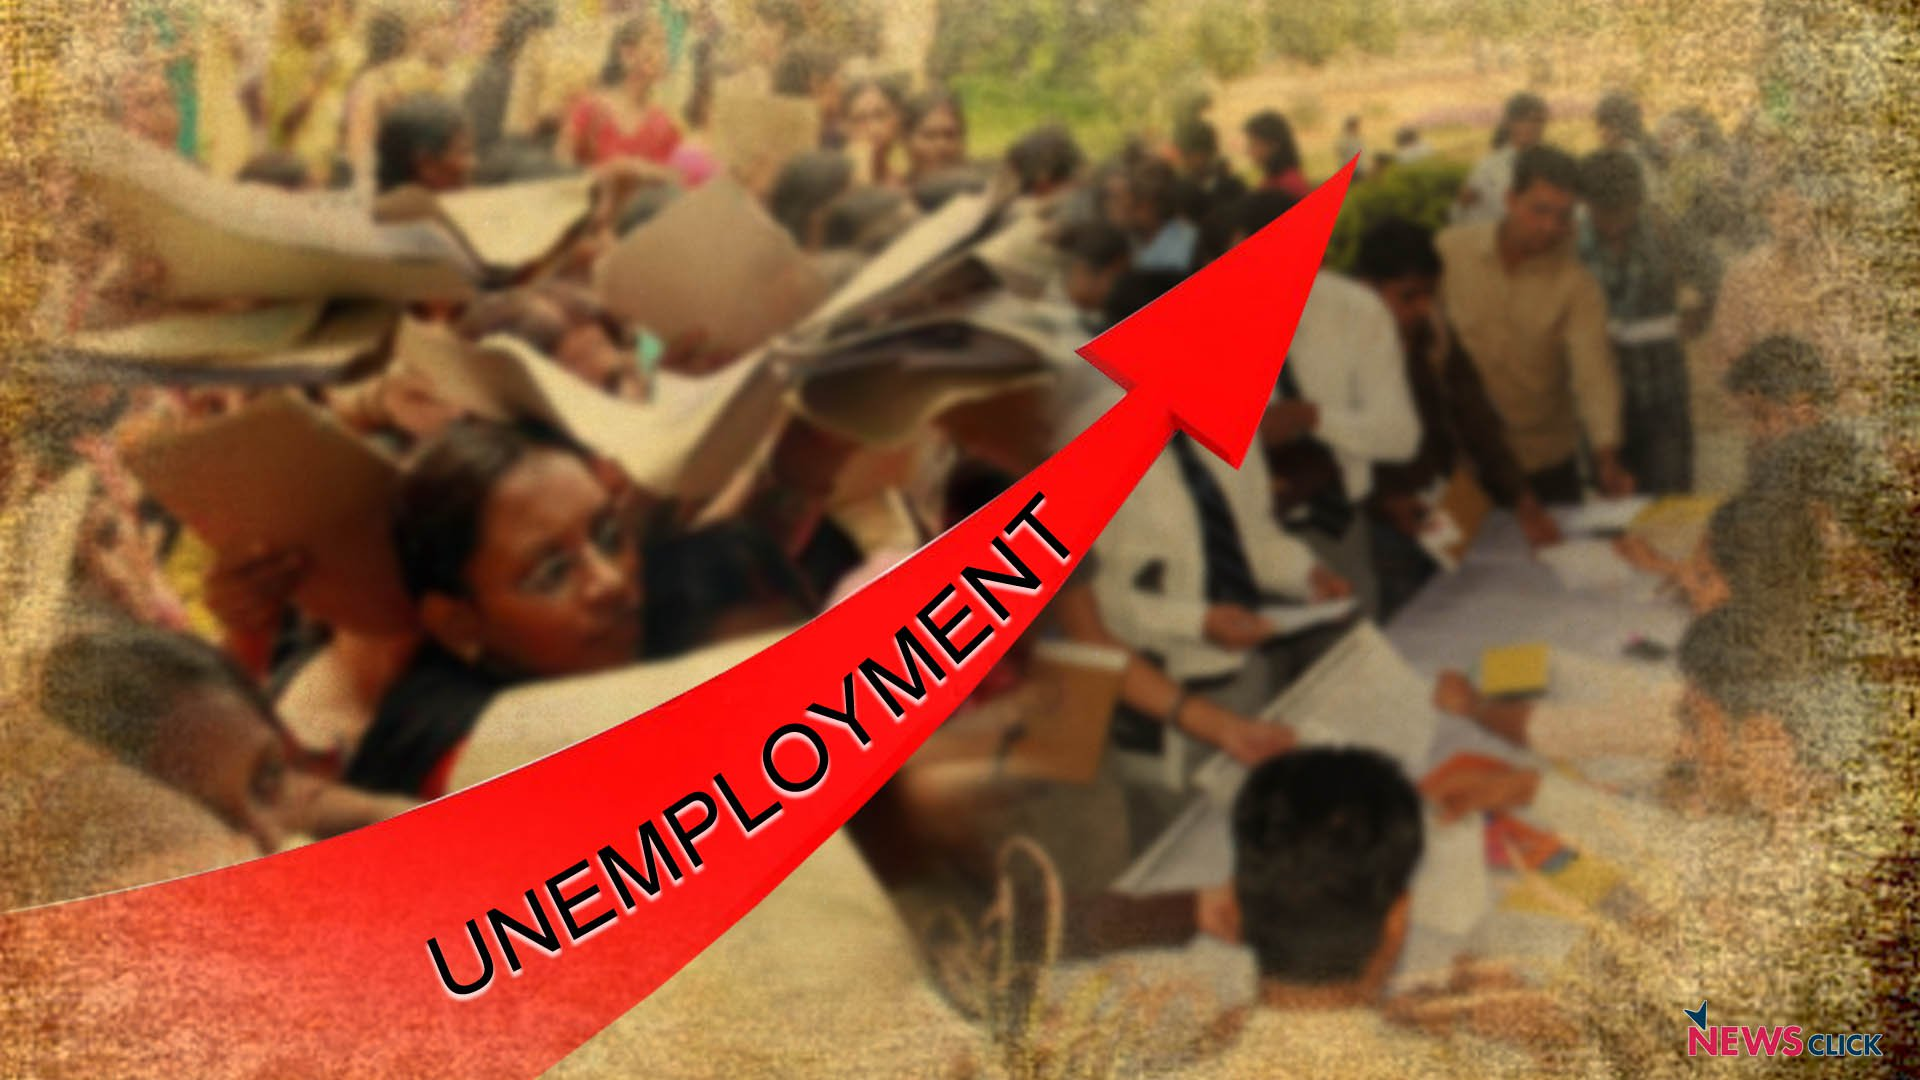 Over 60 Lakh Government Job Vacancies Unfilled Under Narendra Modi Government